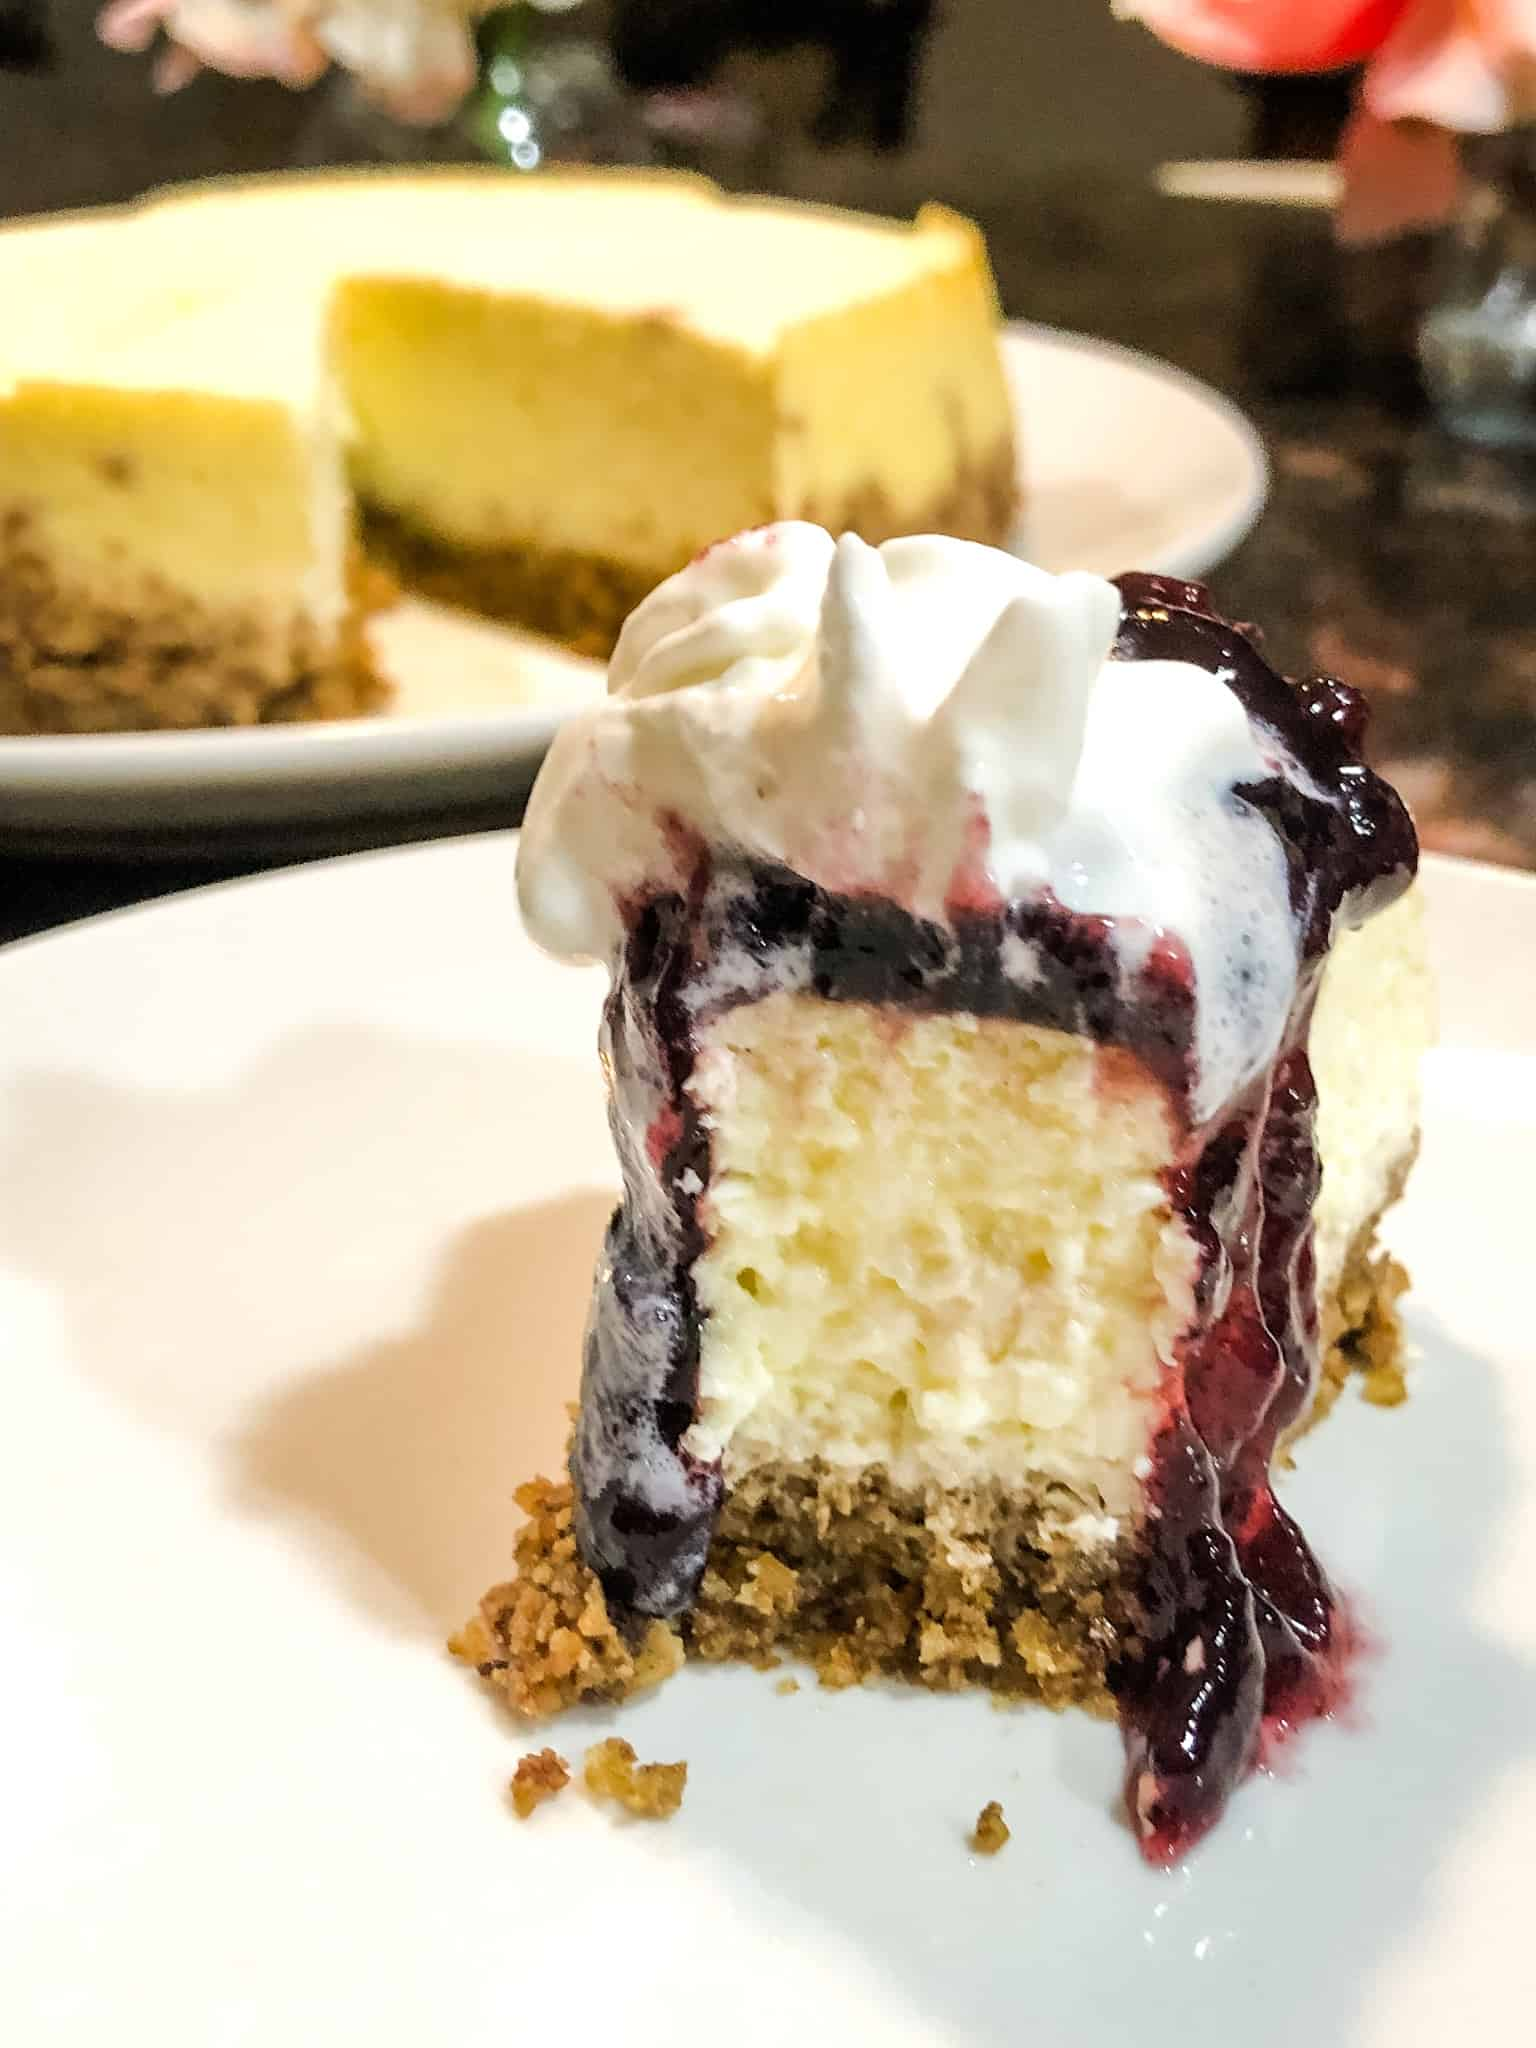 Keto Vanilla Cheesecake served with blueberry sauce and whipped cream